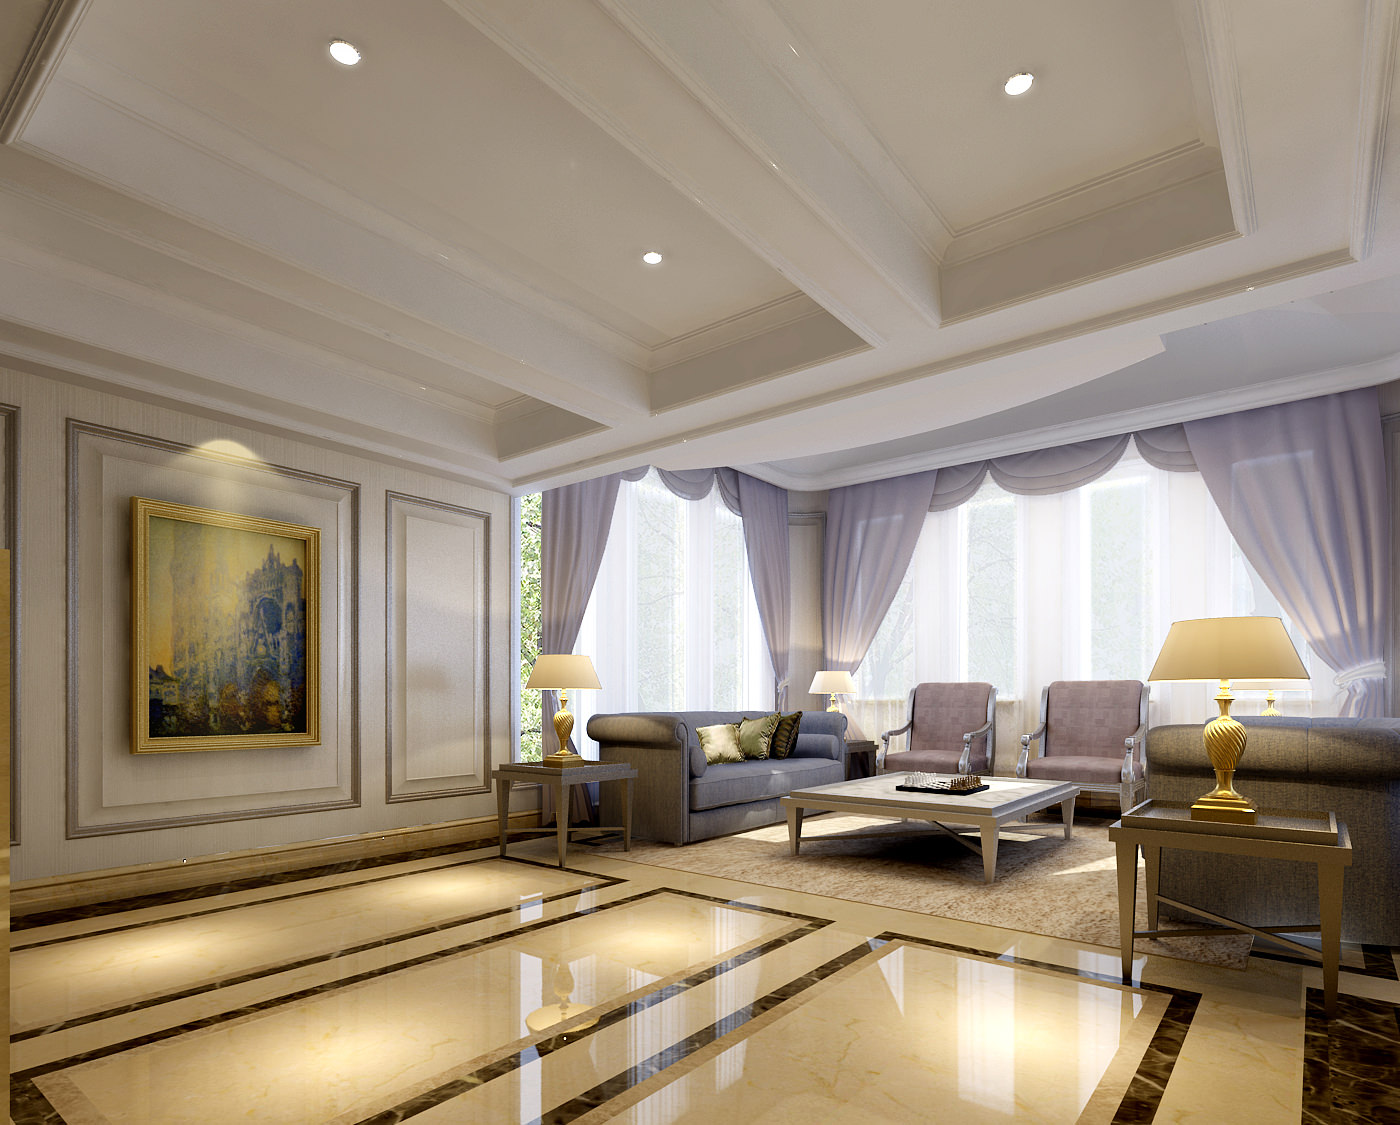 ... Posh Living Room With Balcony 3d Model Max 10